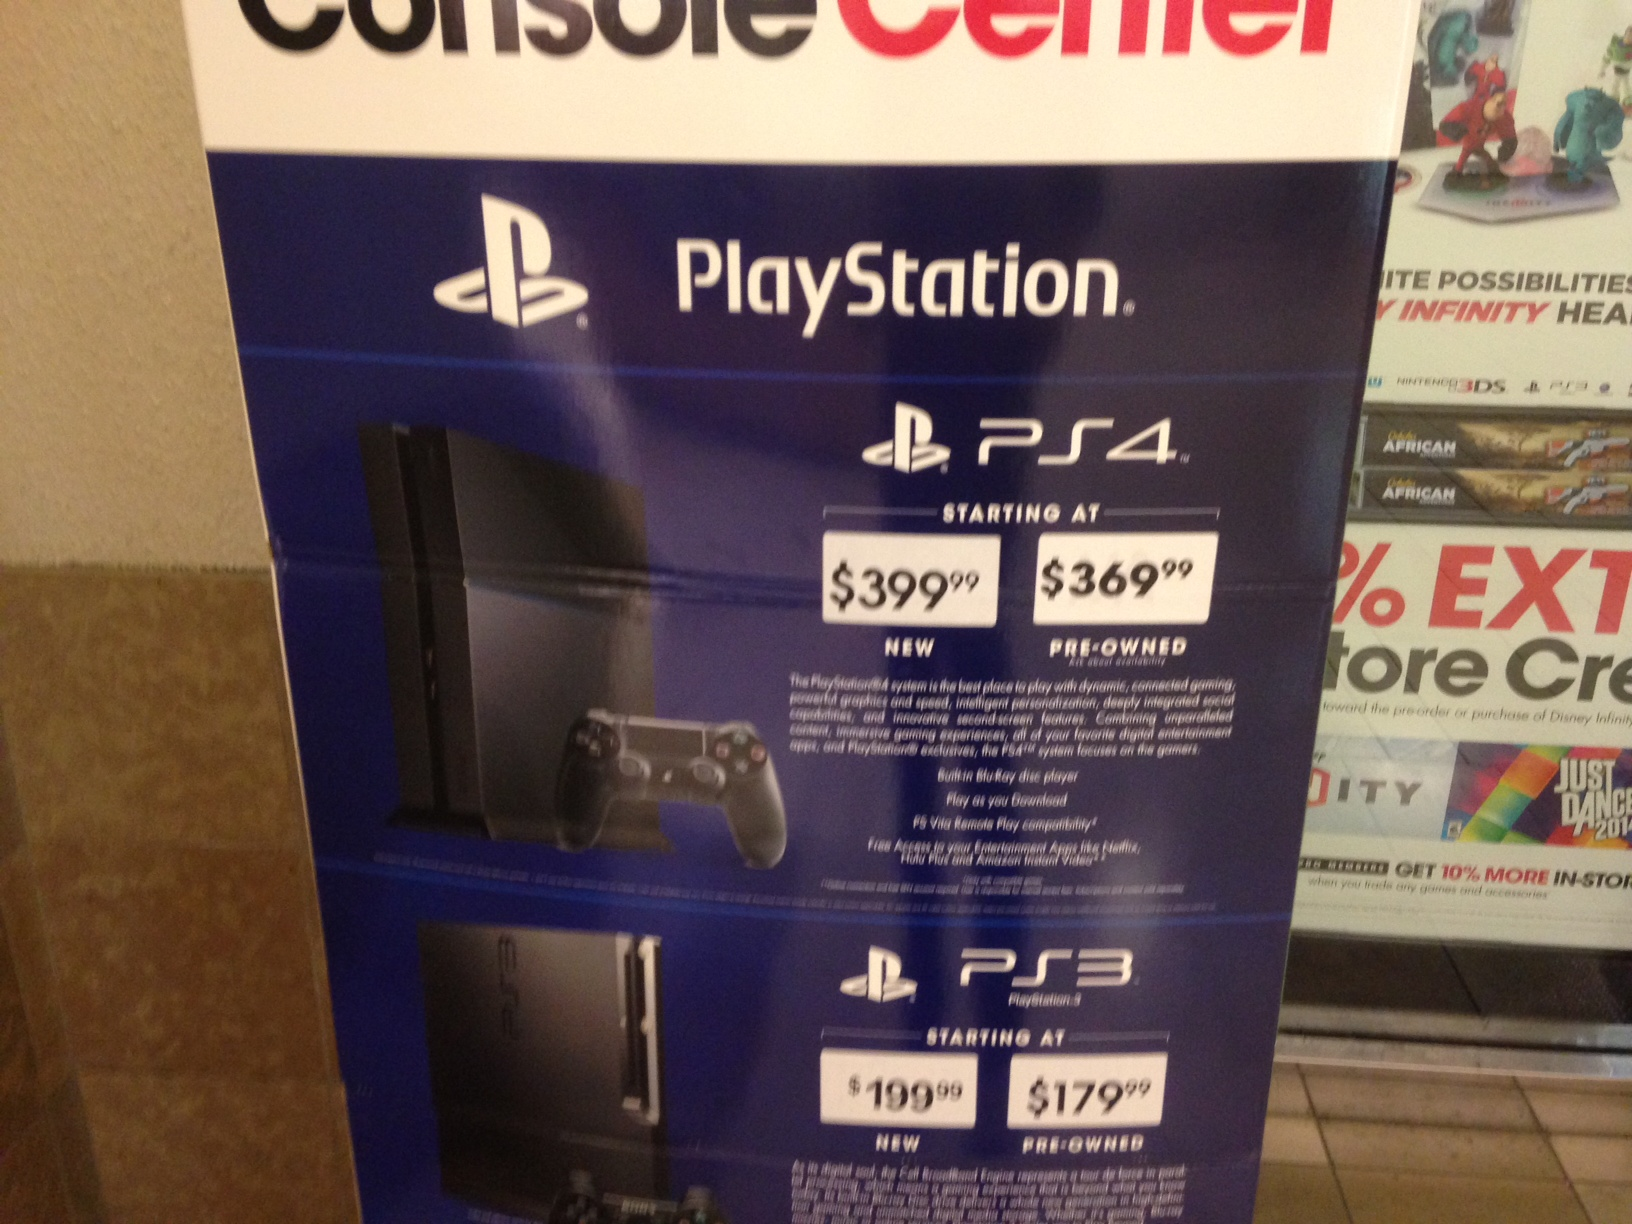 Apr 14,  · Going to be getting a PS4 in a few days, however gamestop has both pre-owned and refurbished for what would be a safer and better bet?